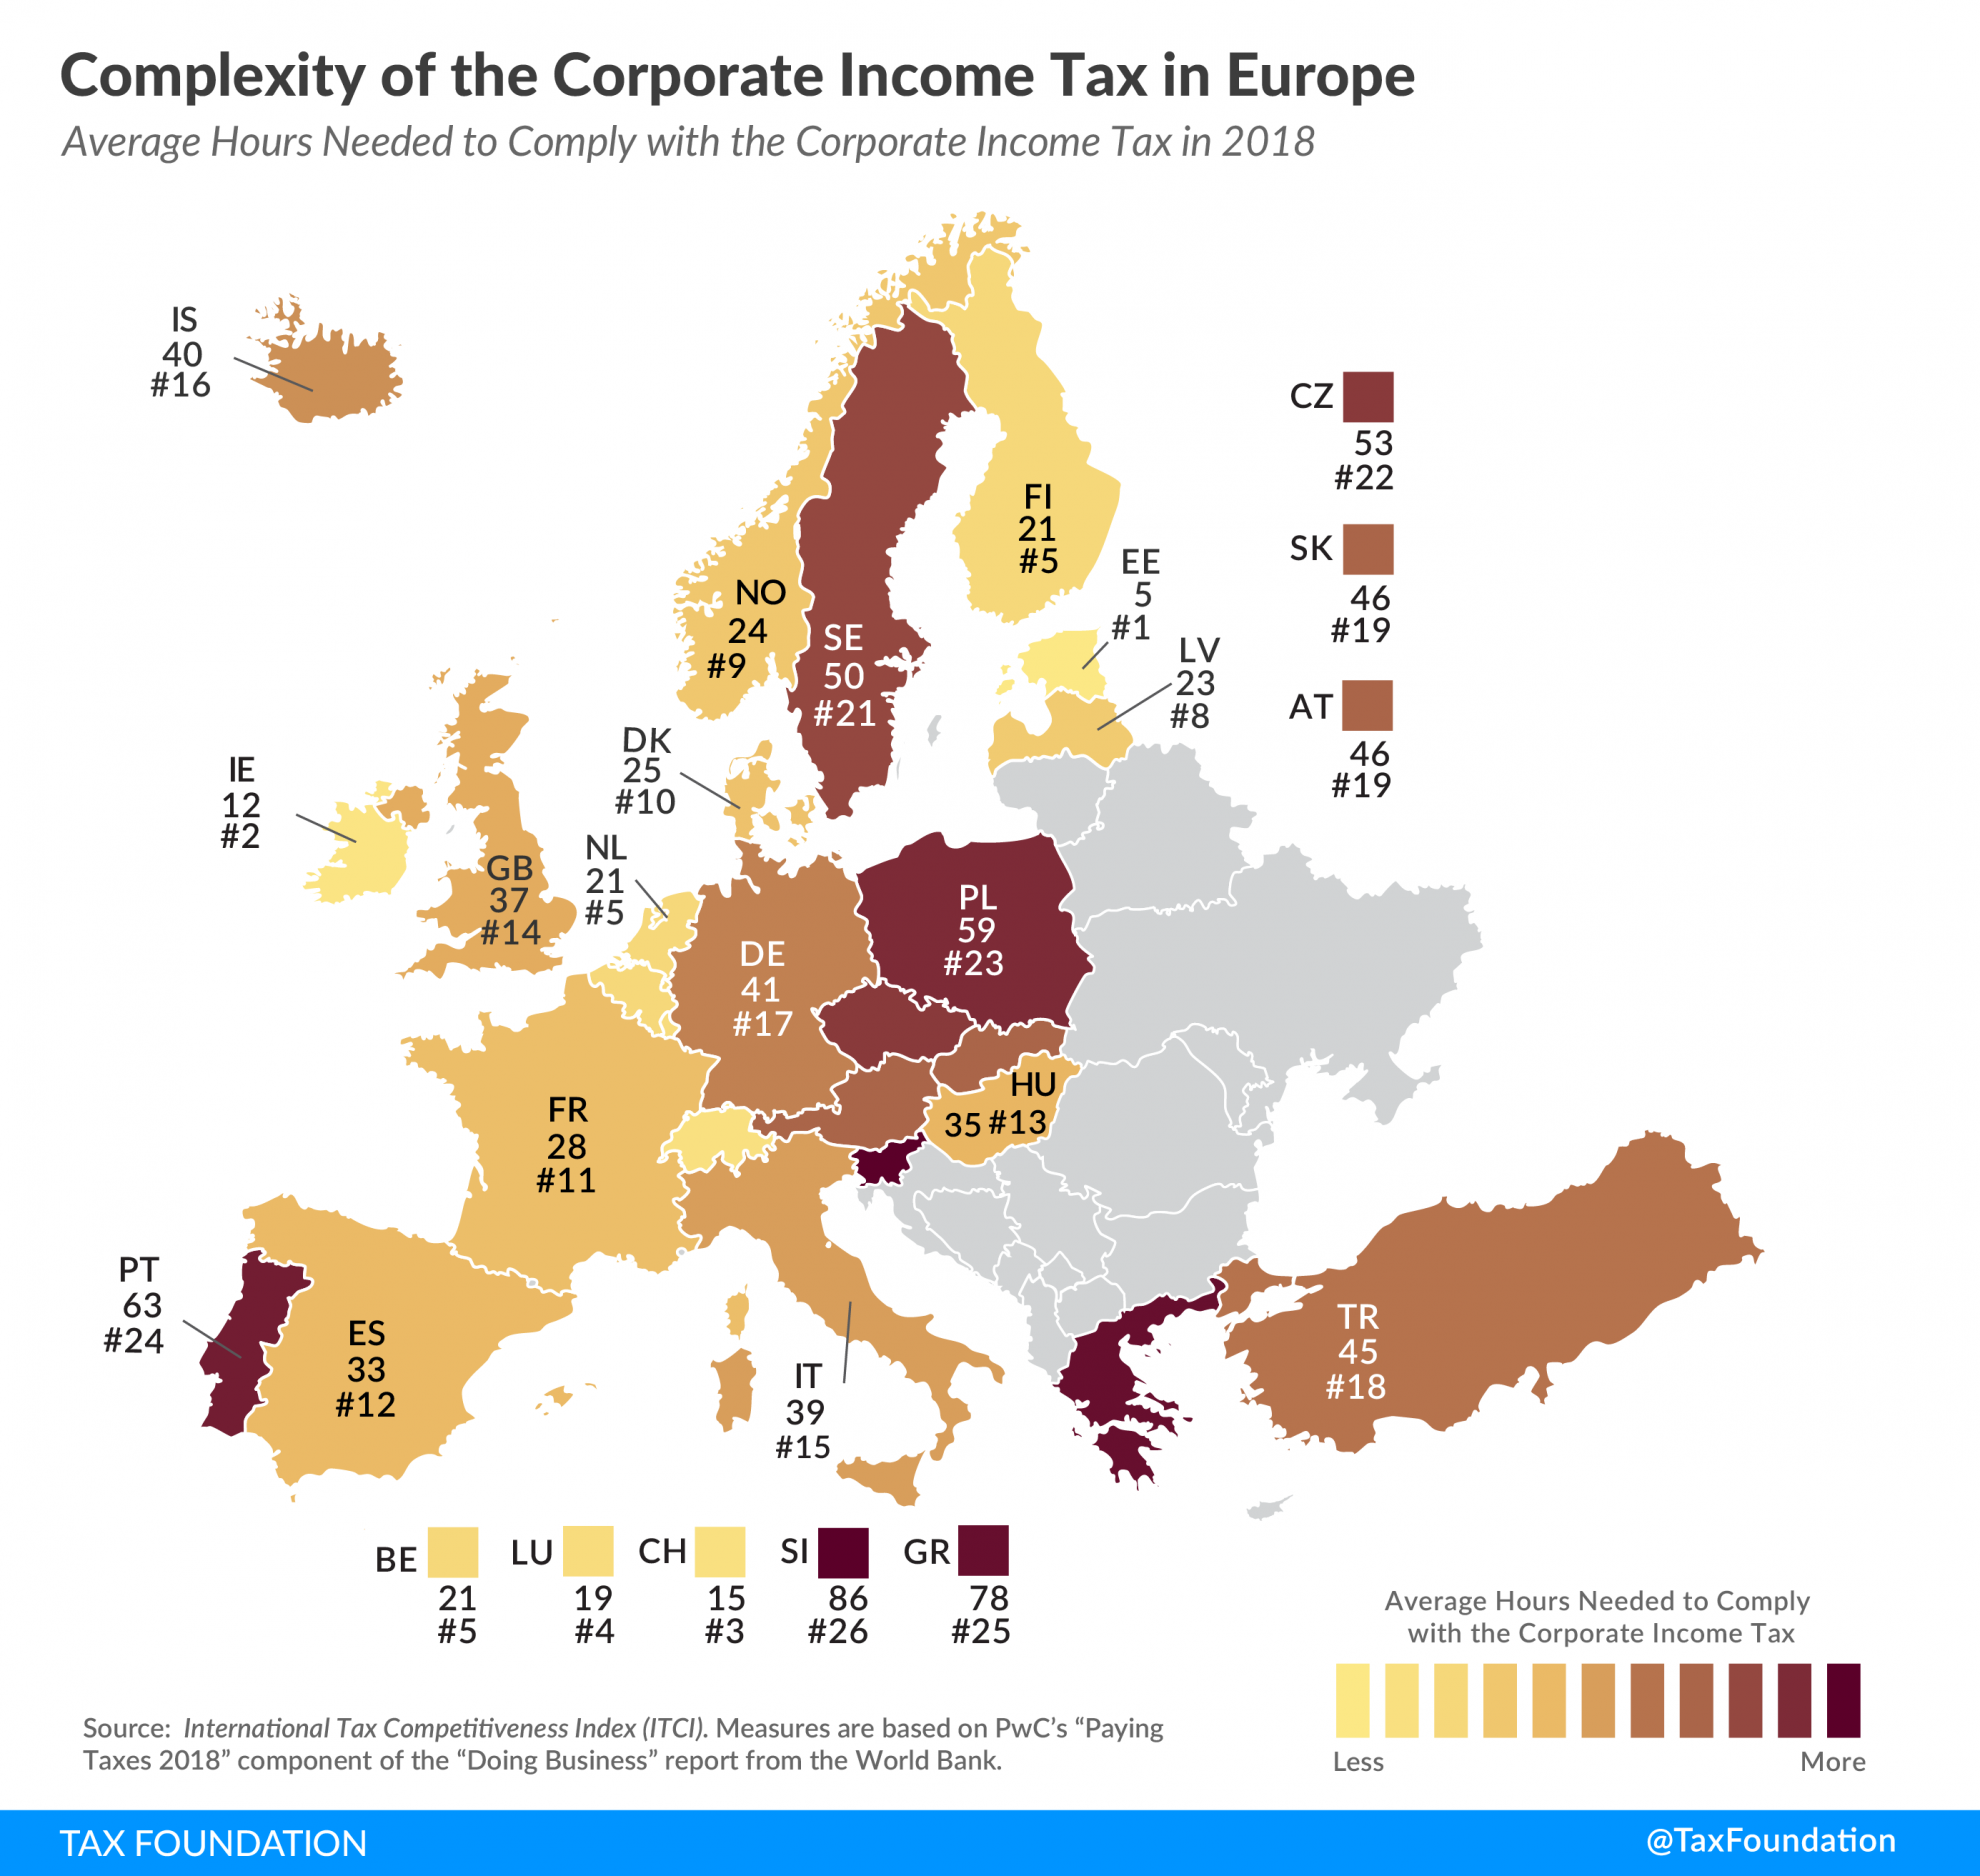 corporate income tax complexity, corporate tax compliance, corporate tax complexity Europe